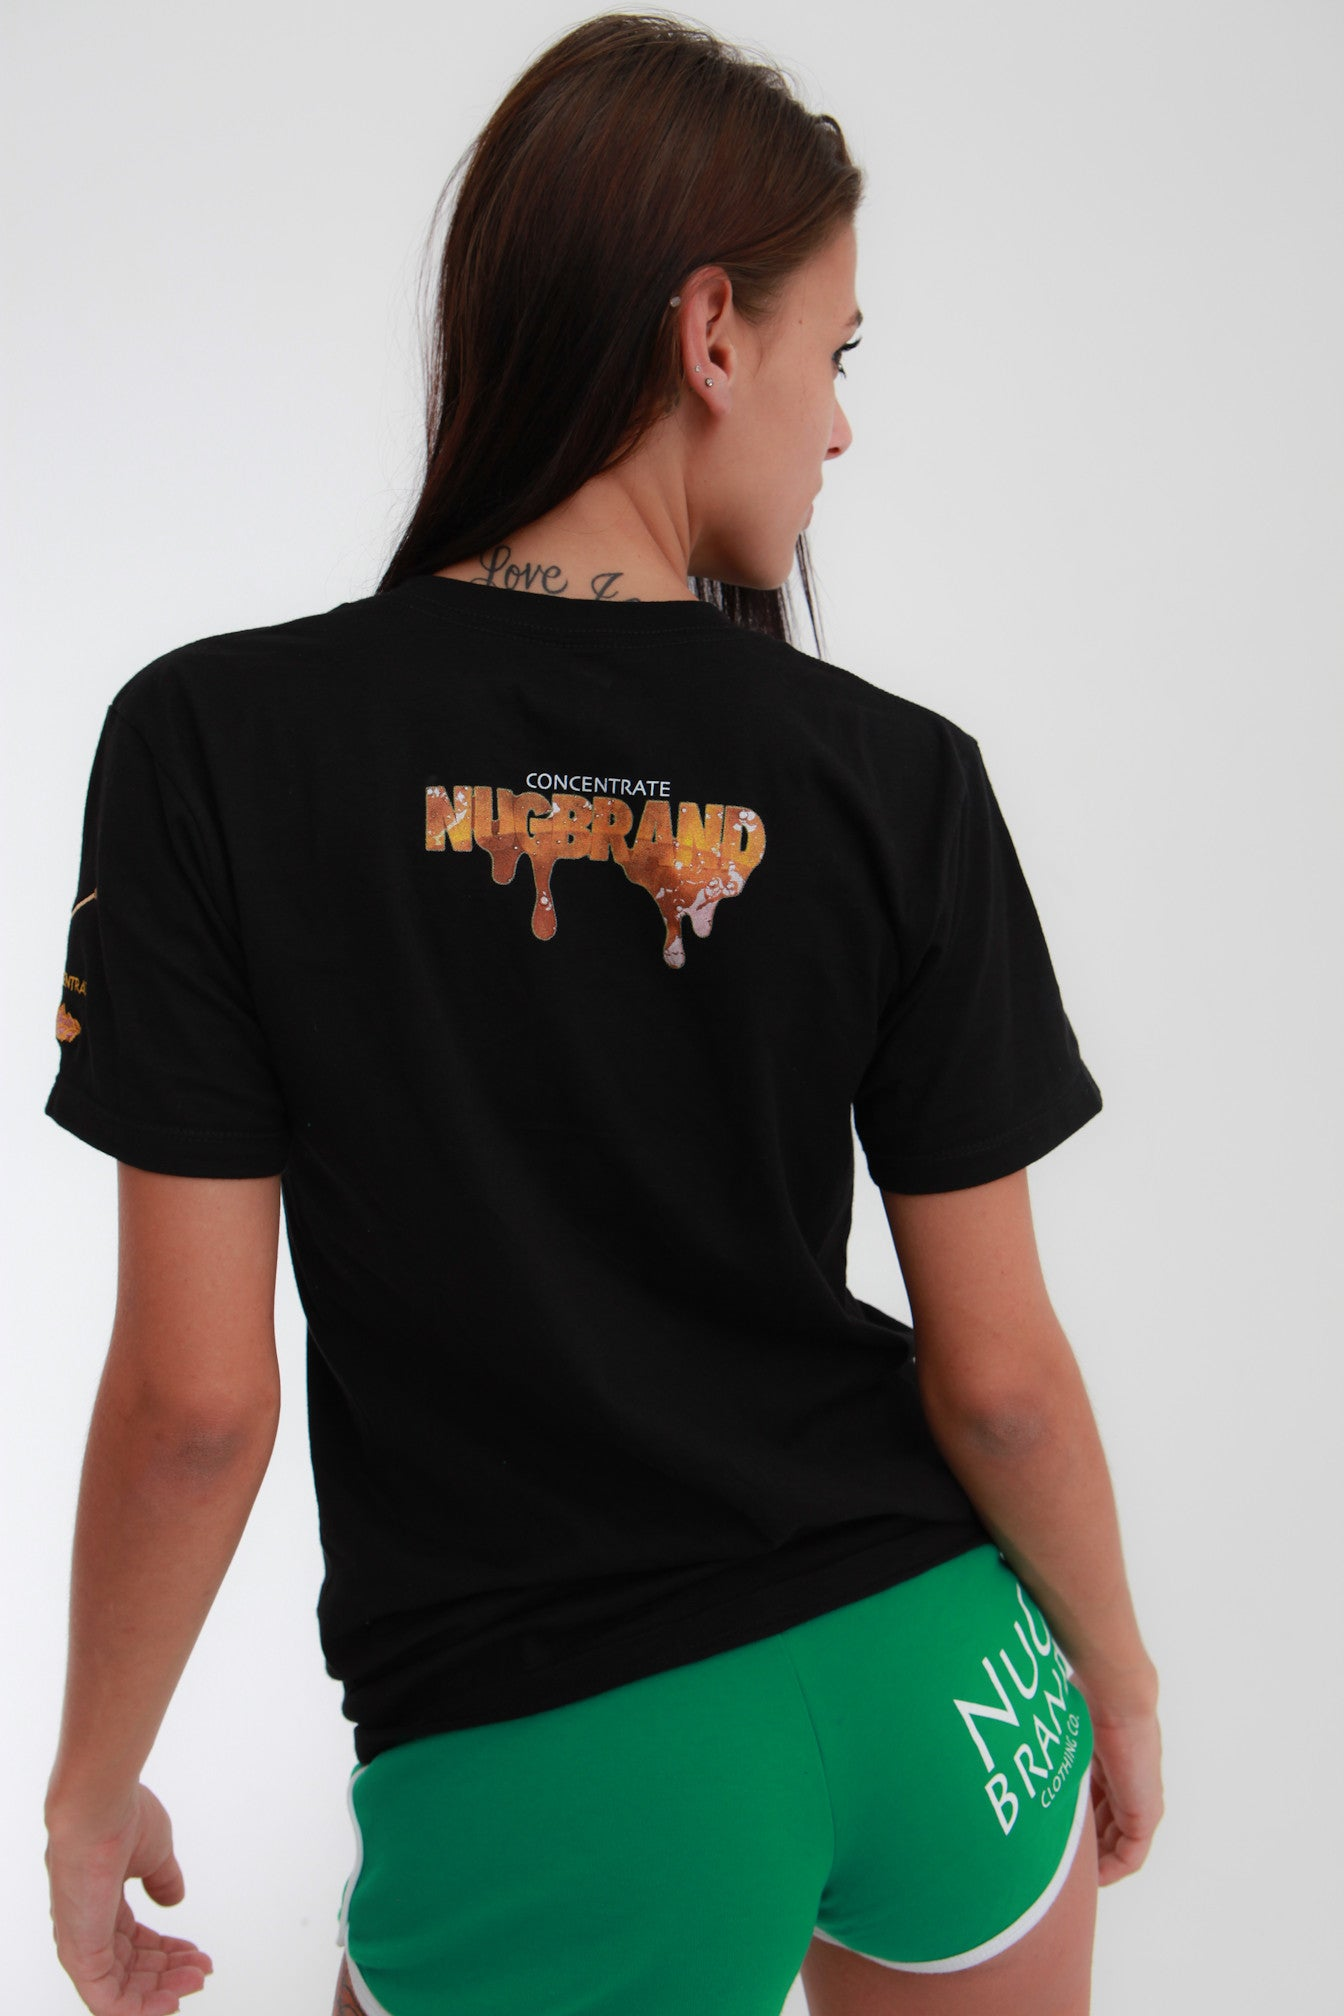 Nugbrand 710 Oil T-Shirt